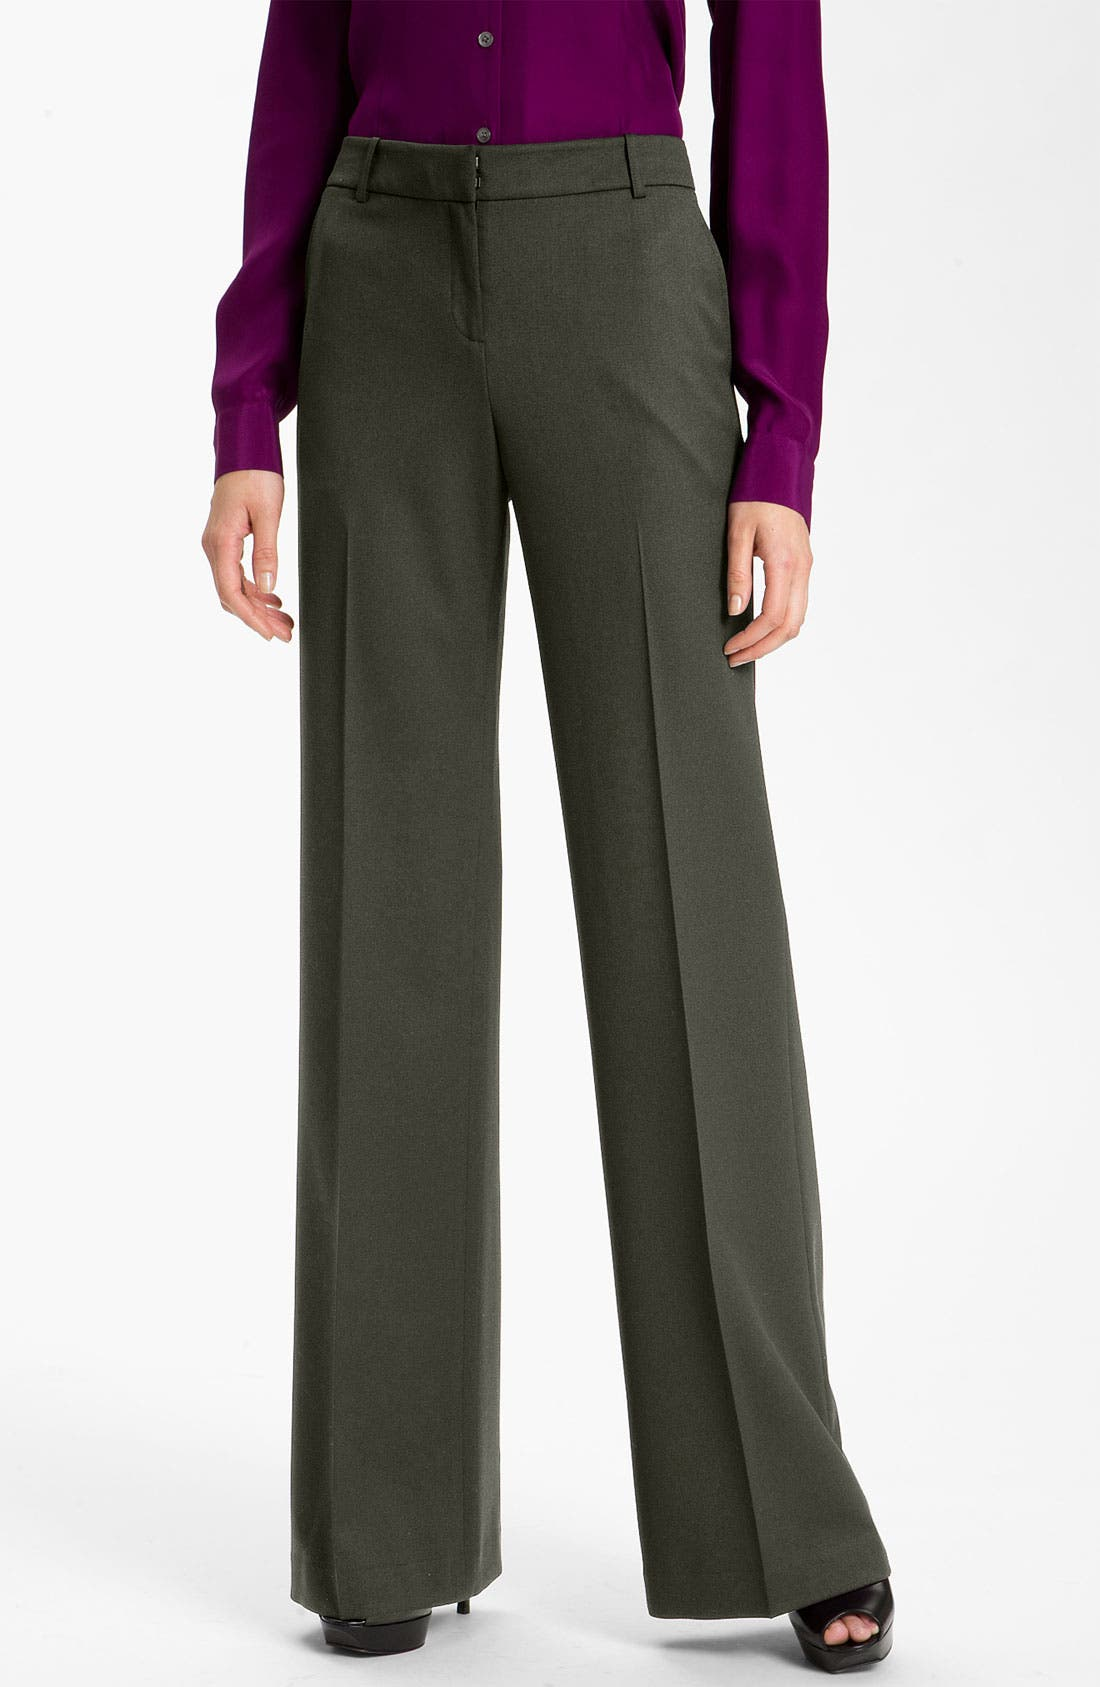 Main Image - Lafayette 148 New York Stretch Wool Pants (Petite)